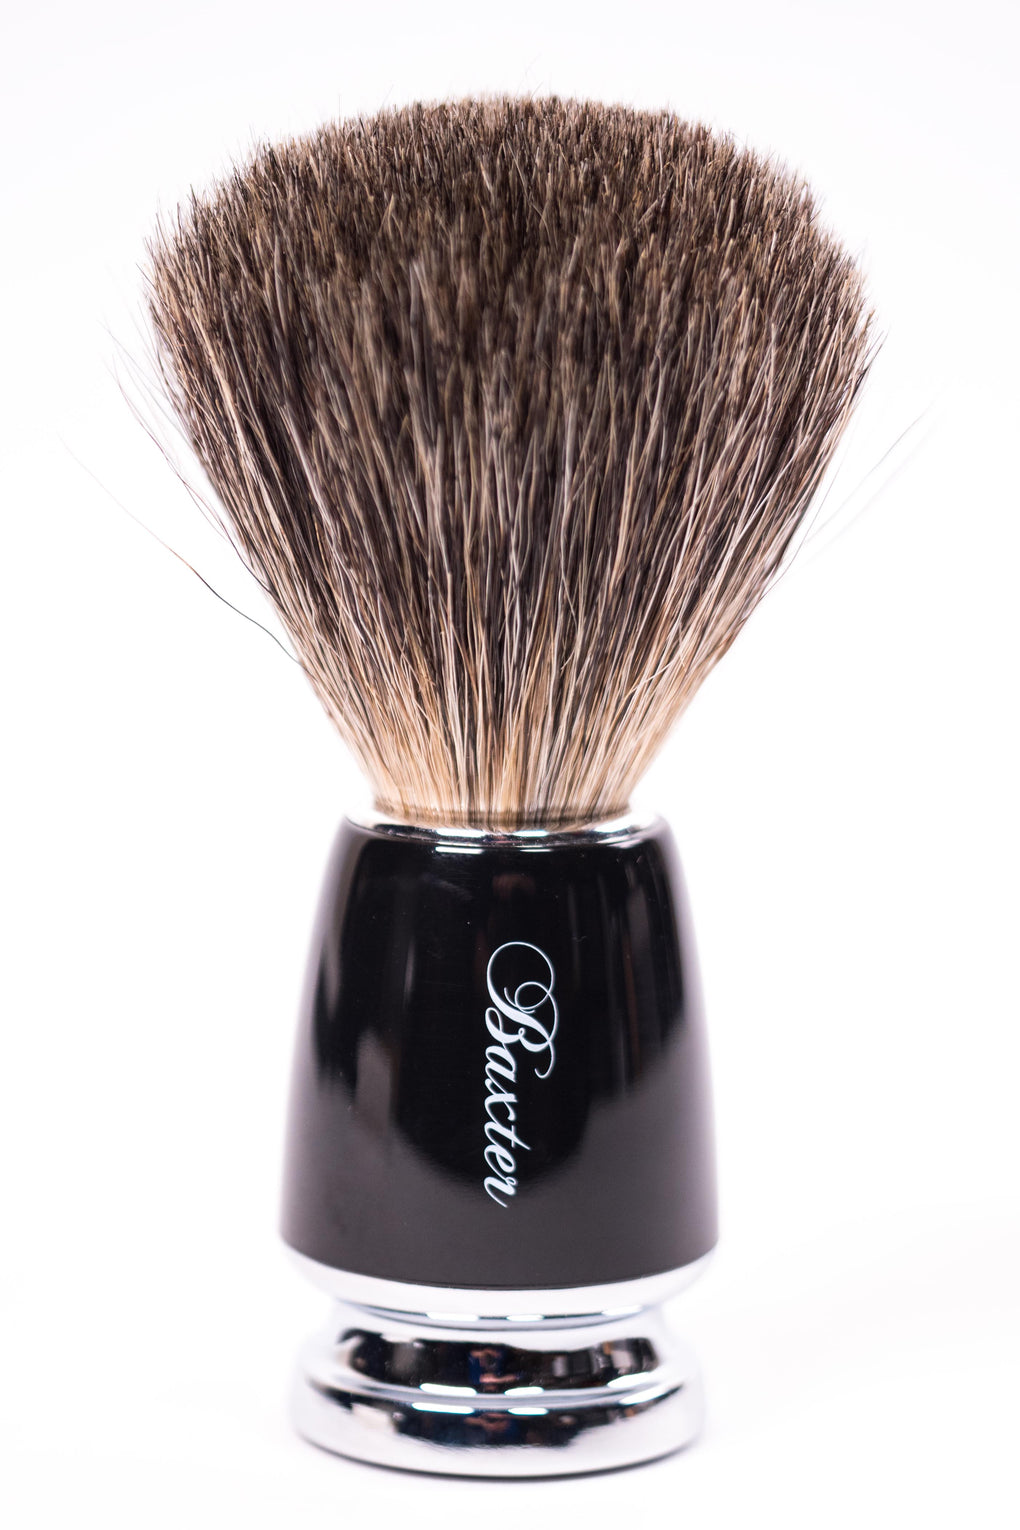 Baxter Best Badger Hair Shave Brush at Consigliere